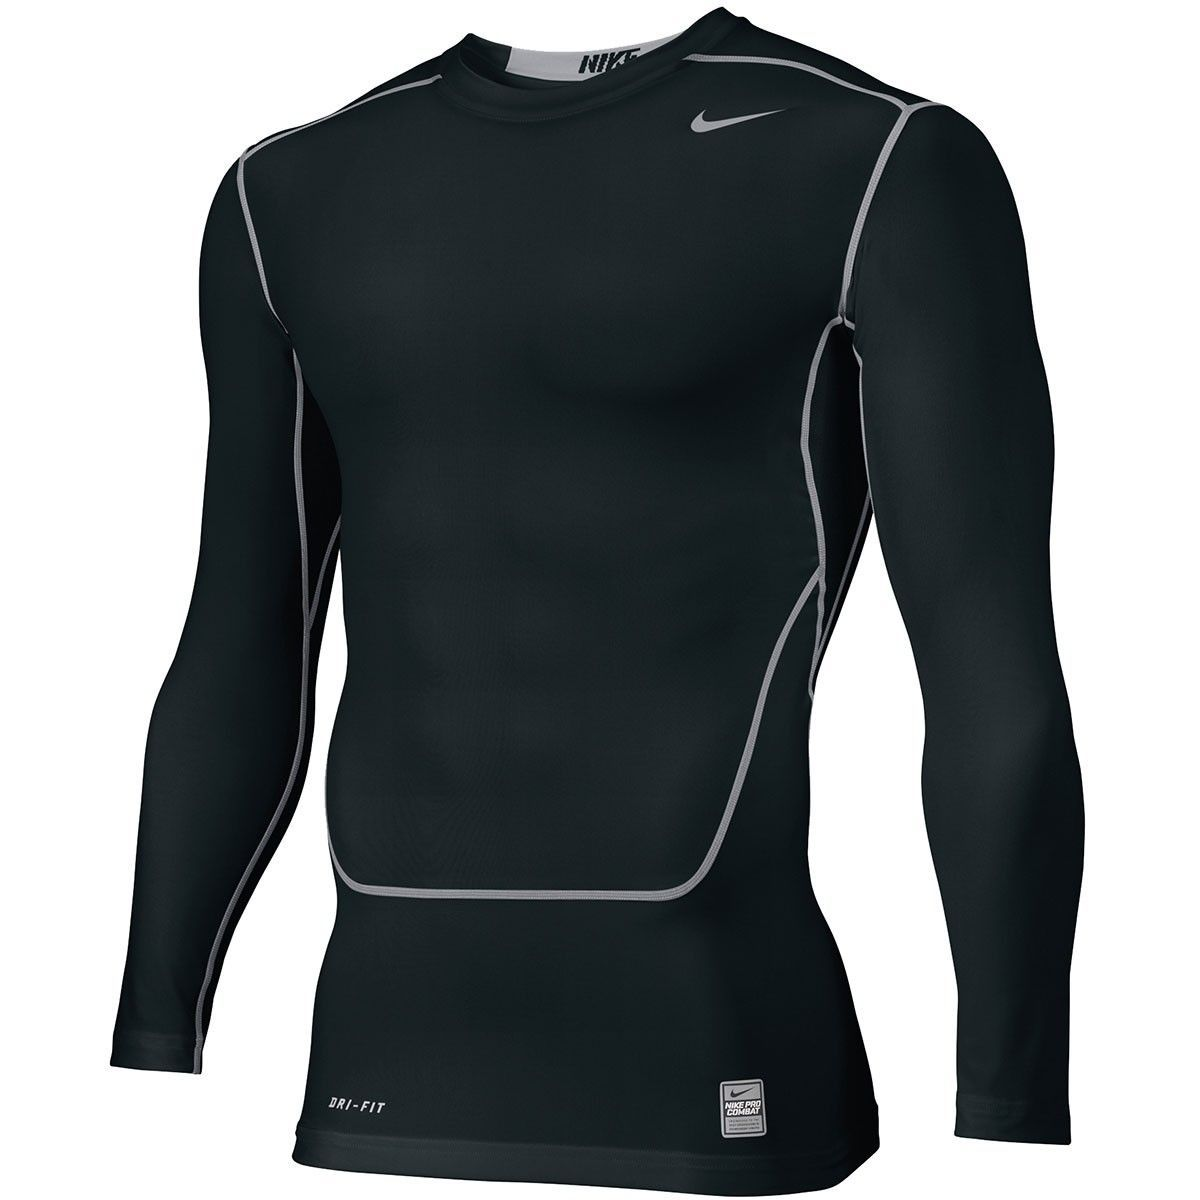 nike pro combat core compression nike clothing pinterest nike pro combat and nike pros. Black Bedroom Furniture Sets. Home Design Ideas